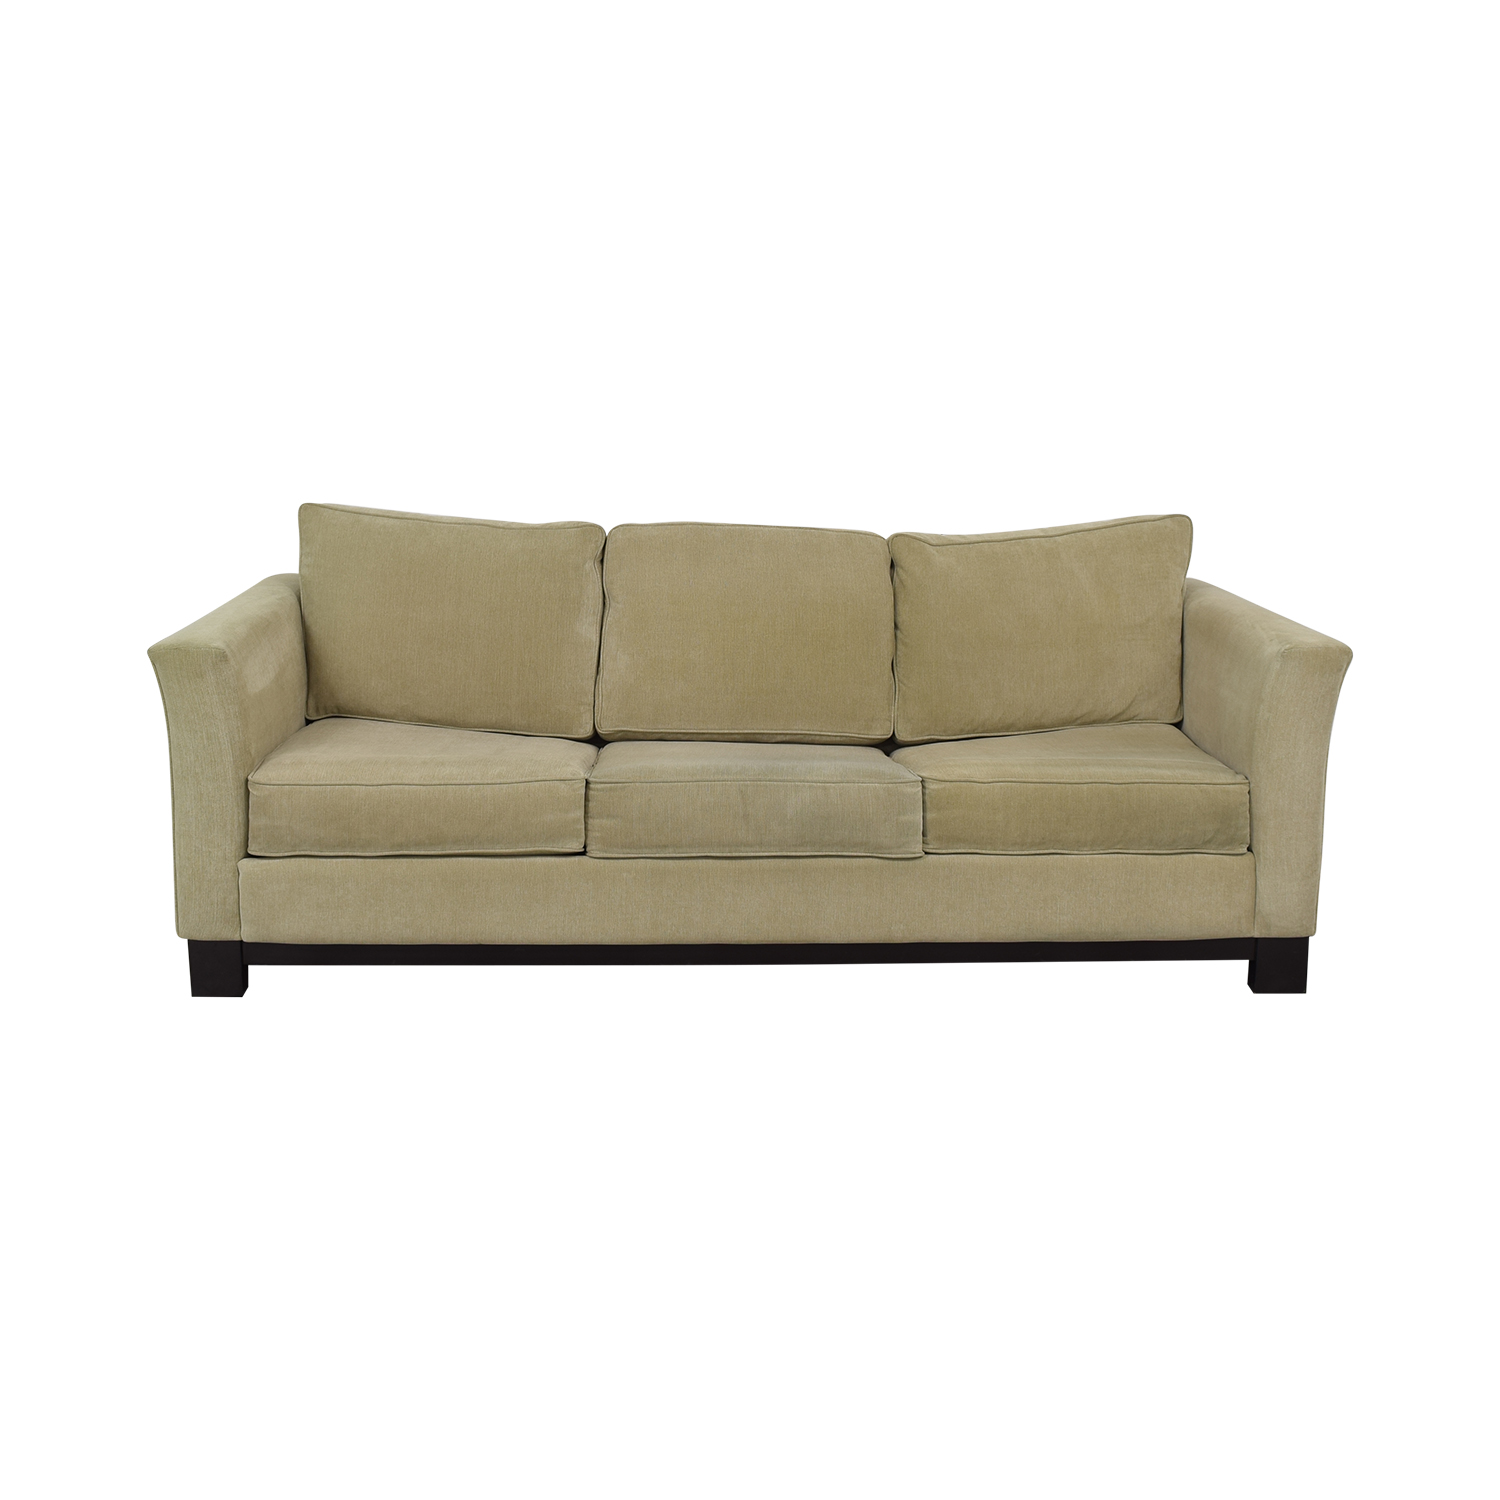 buy Macy's Sleeper Sofa Macy's Sofas